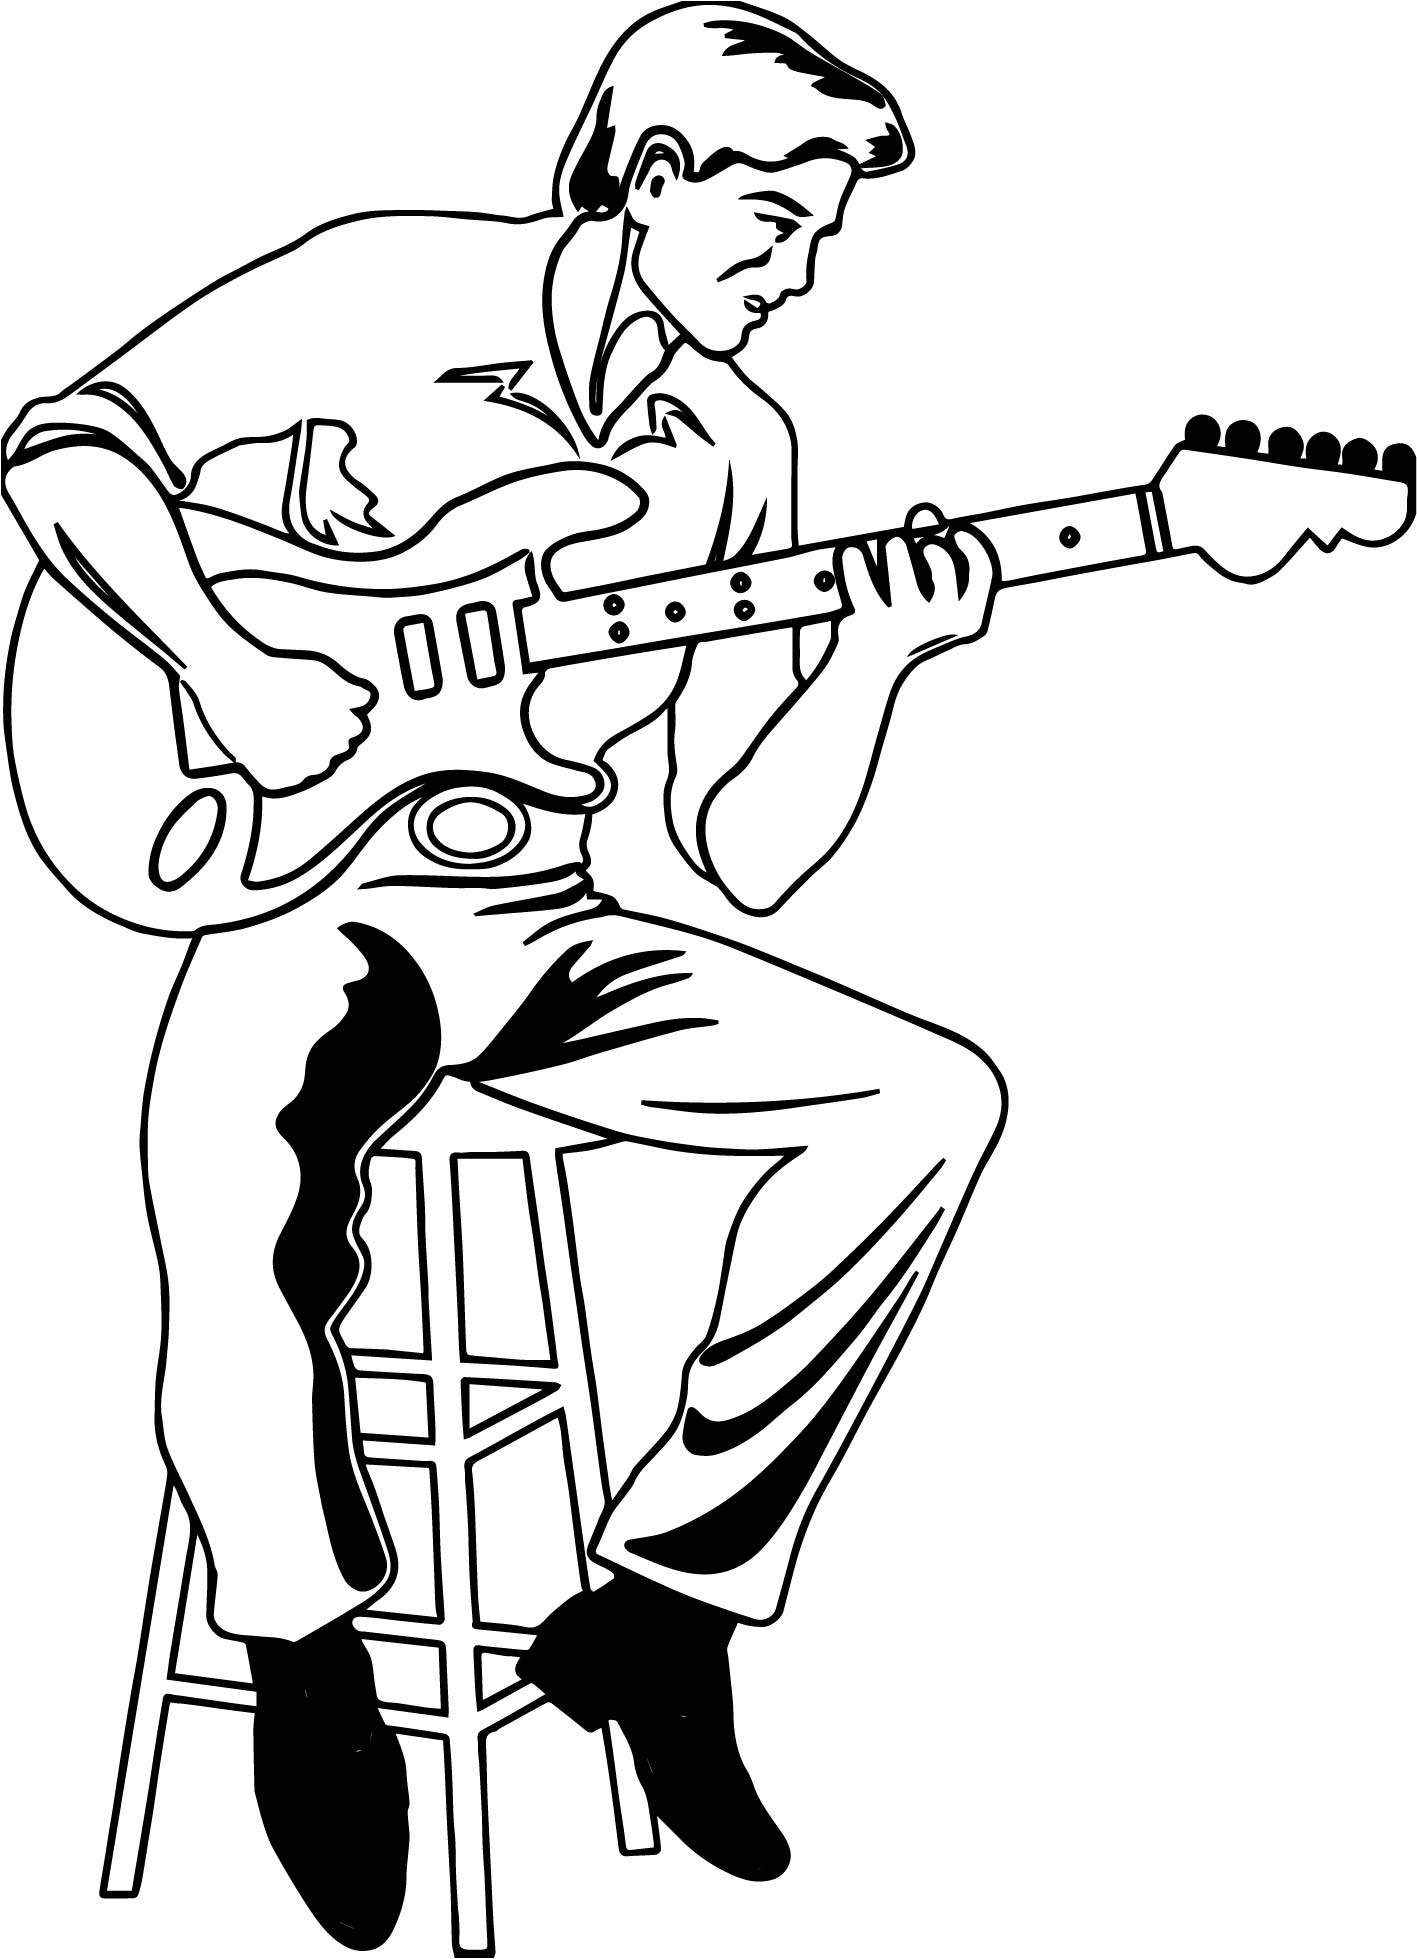 1417x1959 Illustration Of A Man Playing An Electric Playing The Guitar